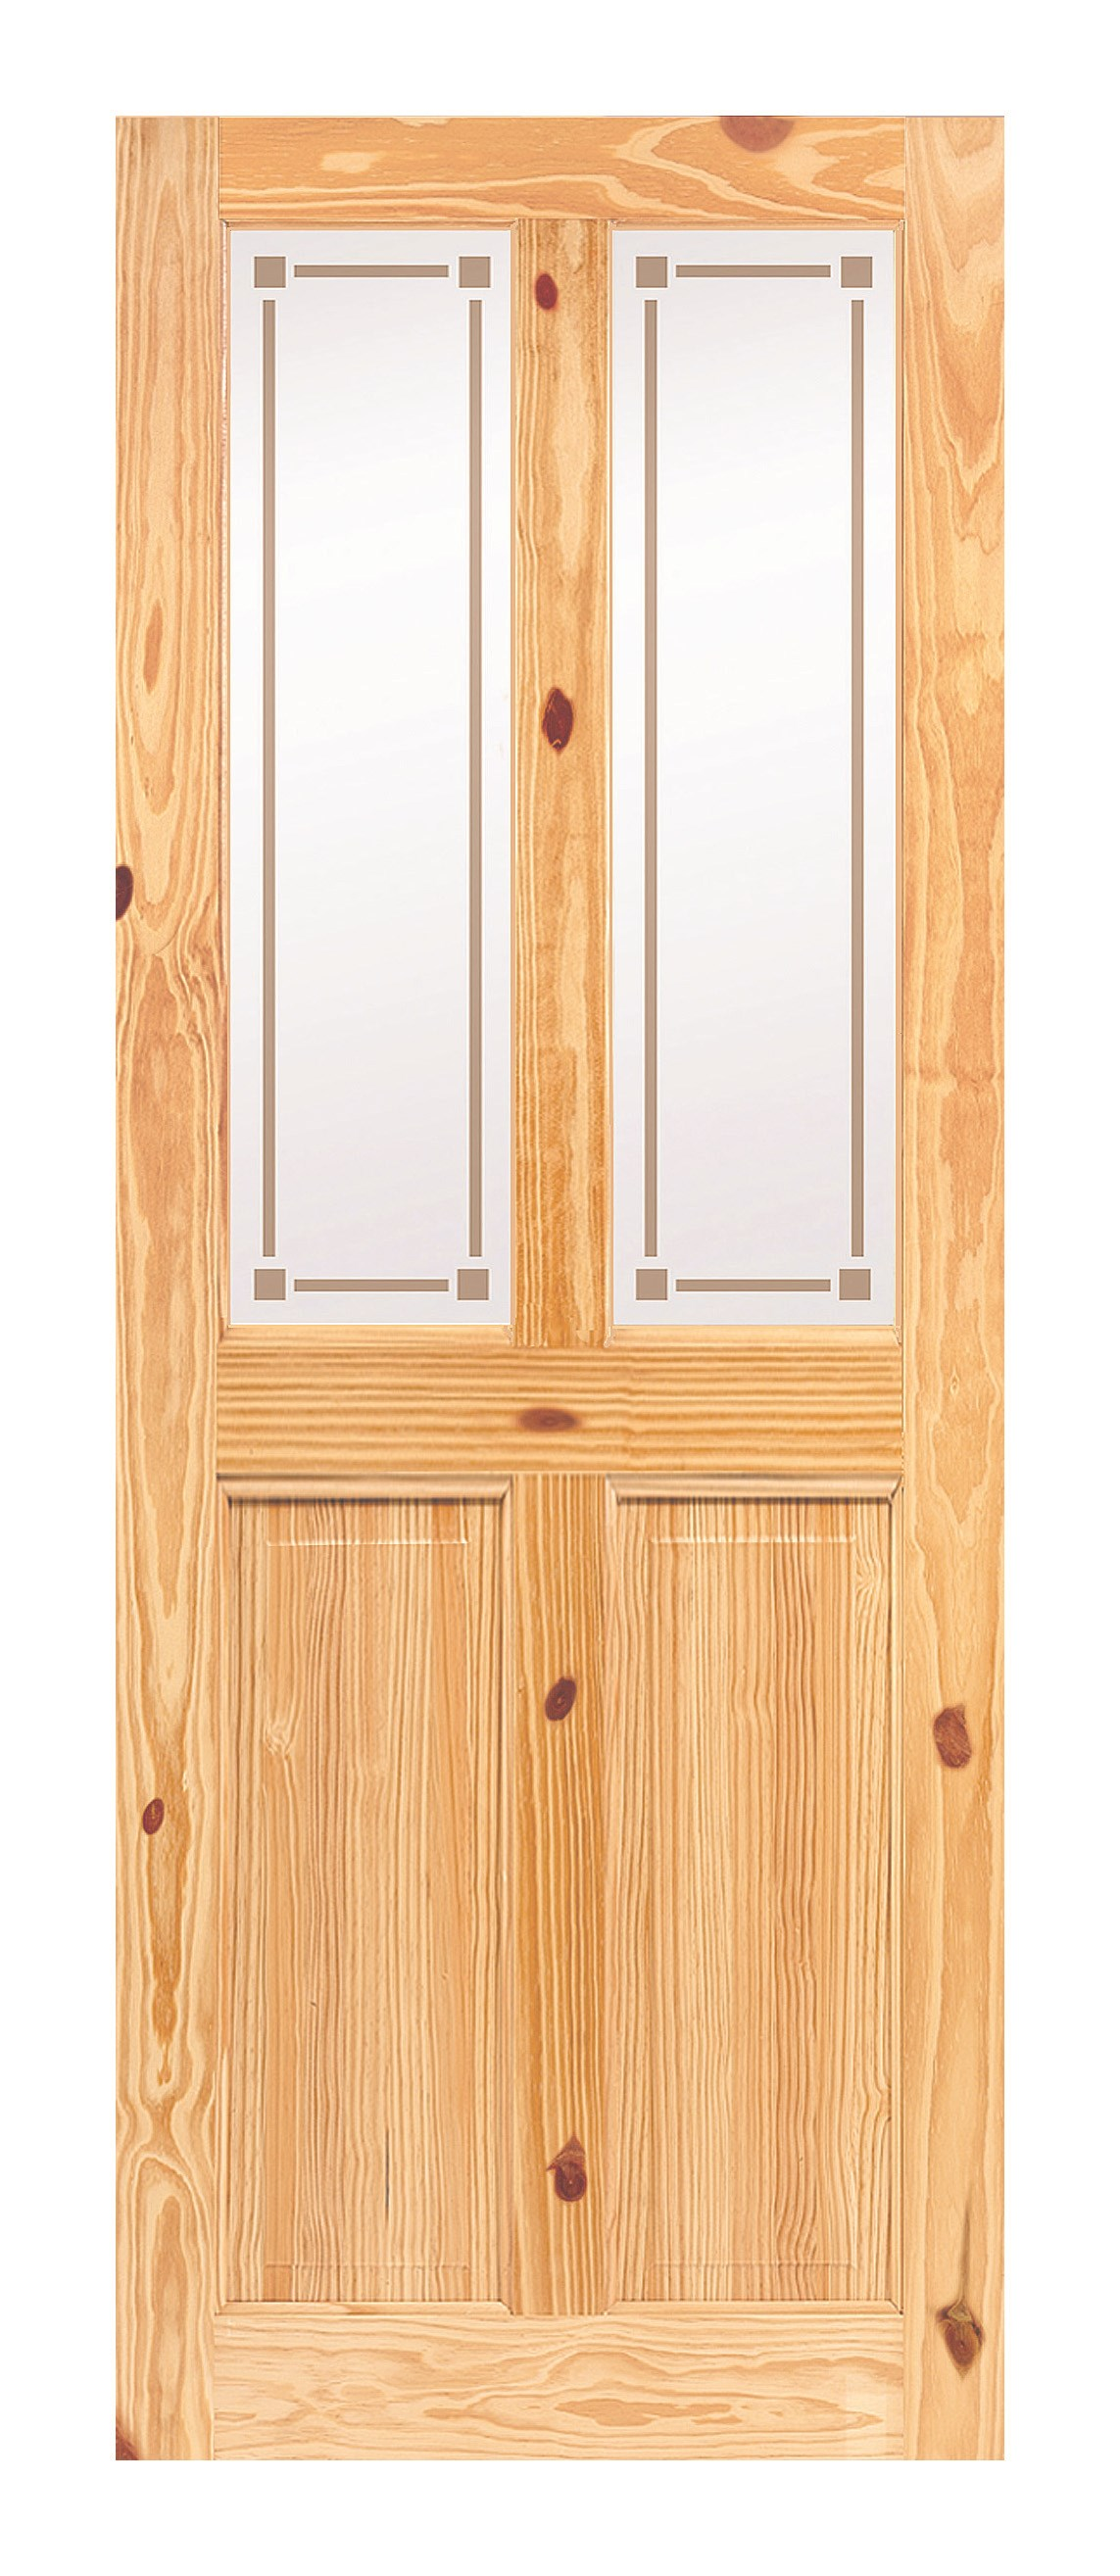 Doras Rio Knotty Pine Frosted Glass Door 44mm Pine